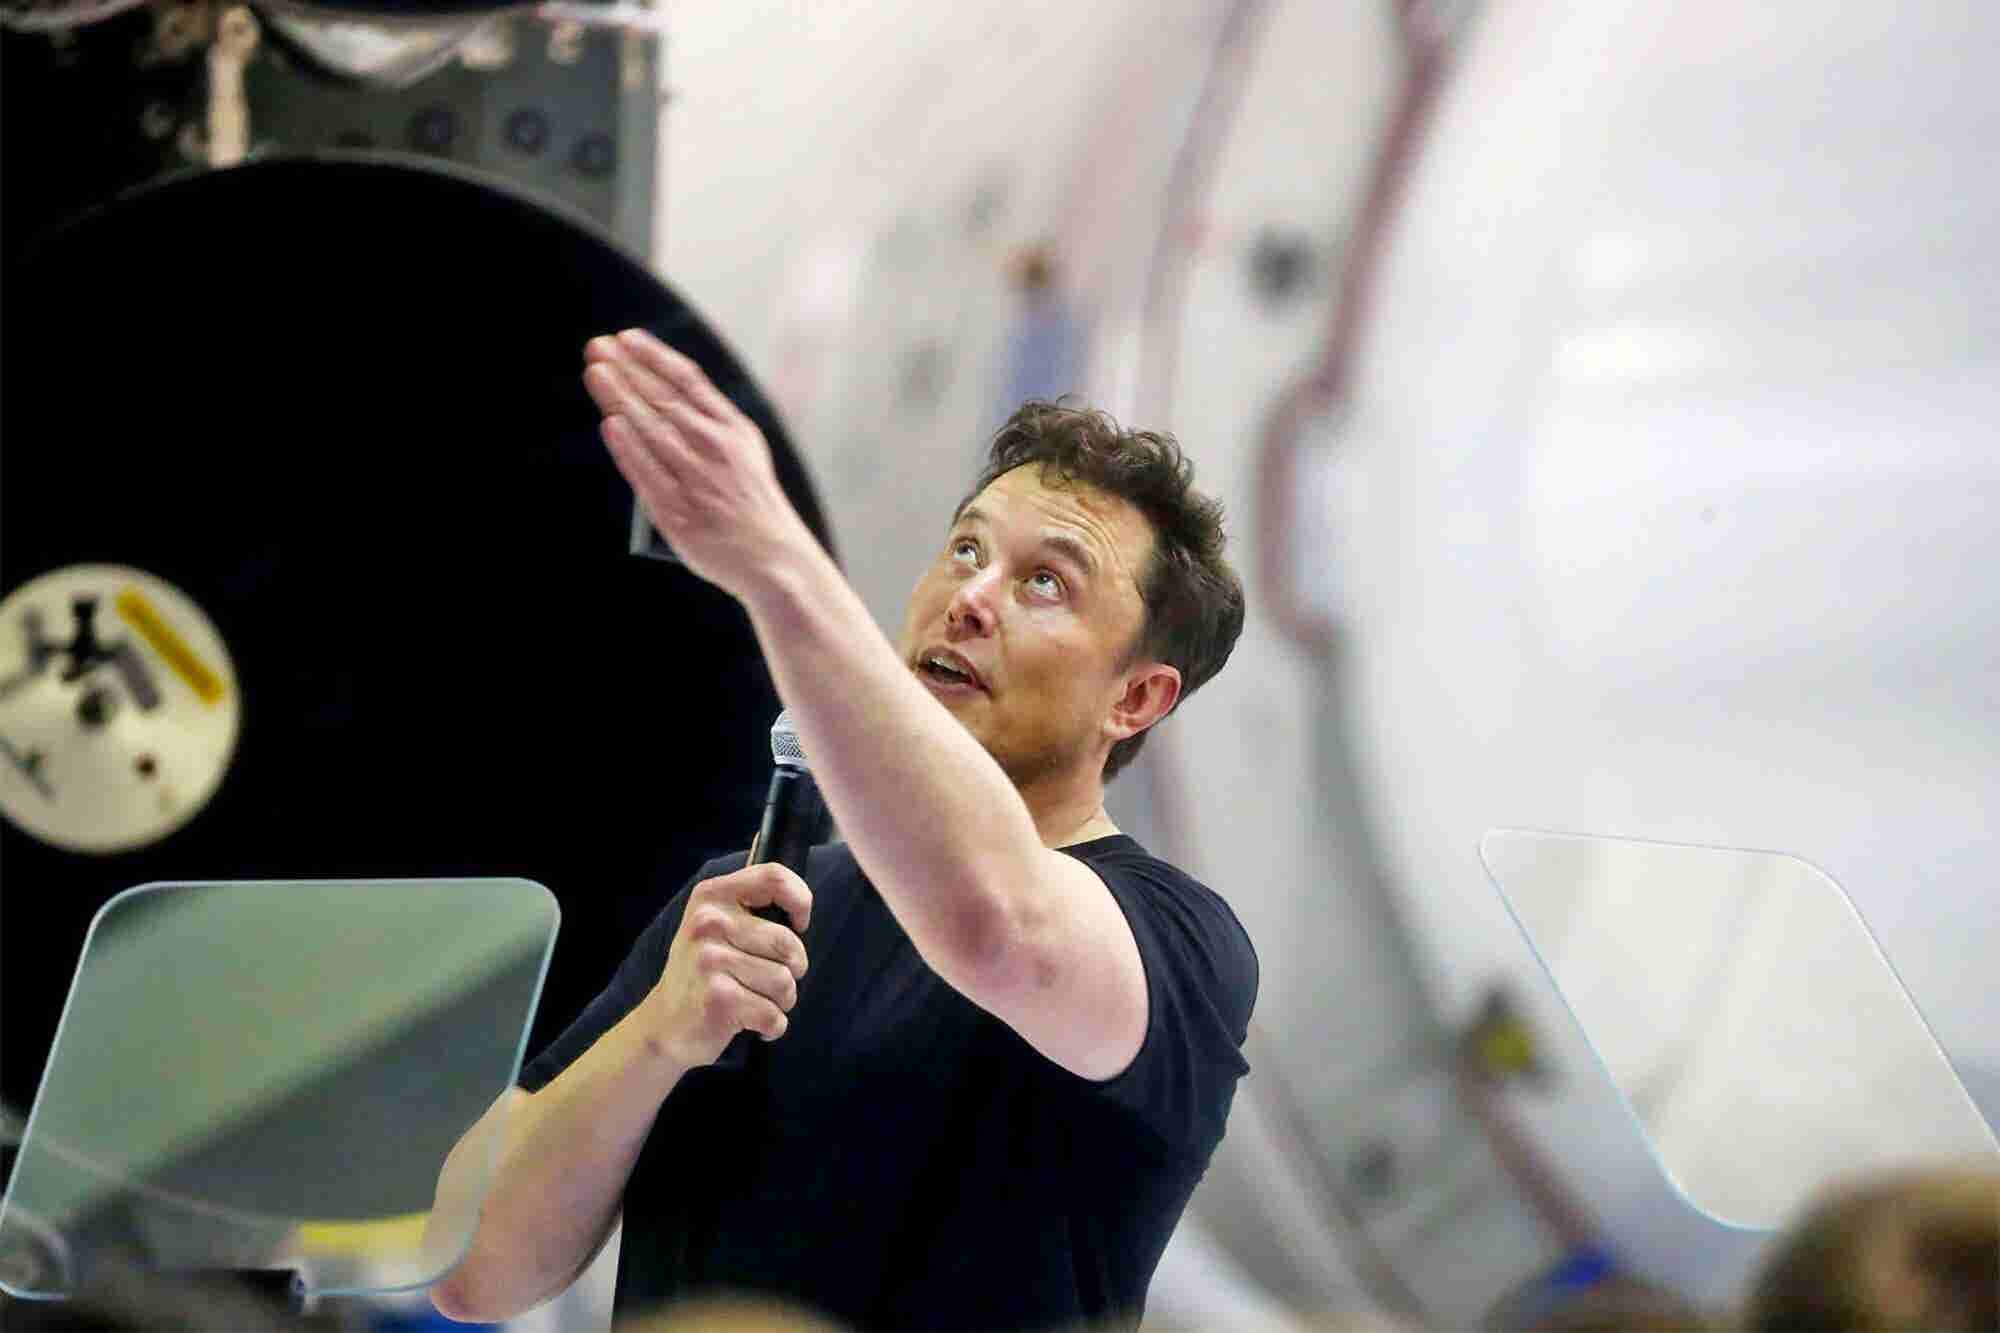 Government Sues Elon Musk for Tweeting About Taking Tesla Private